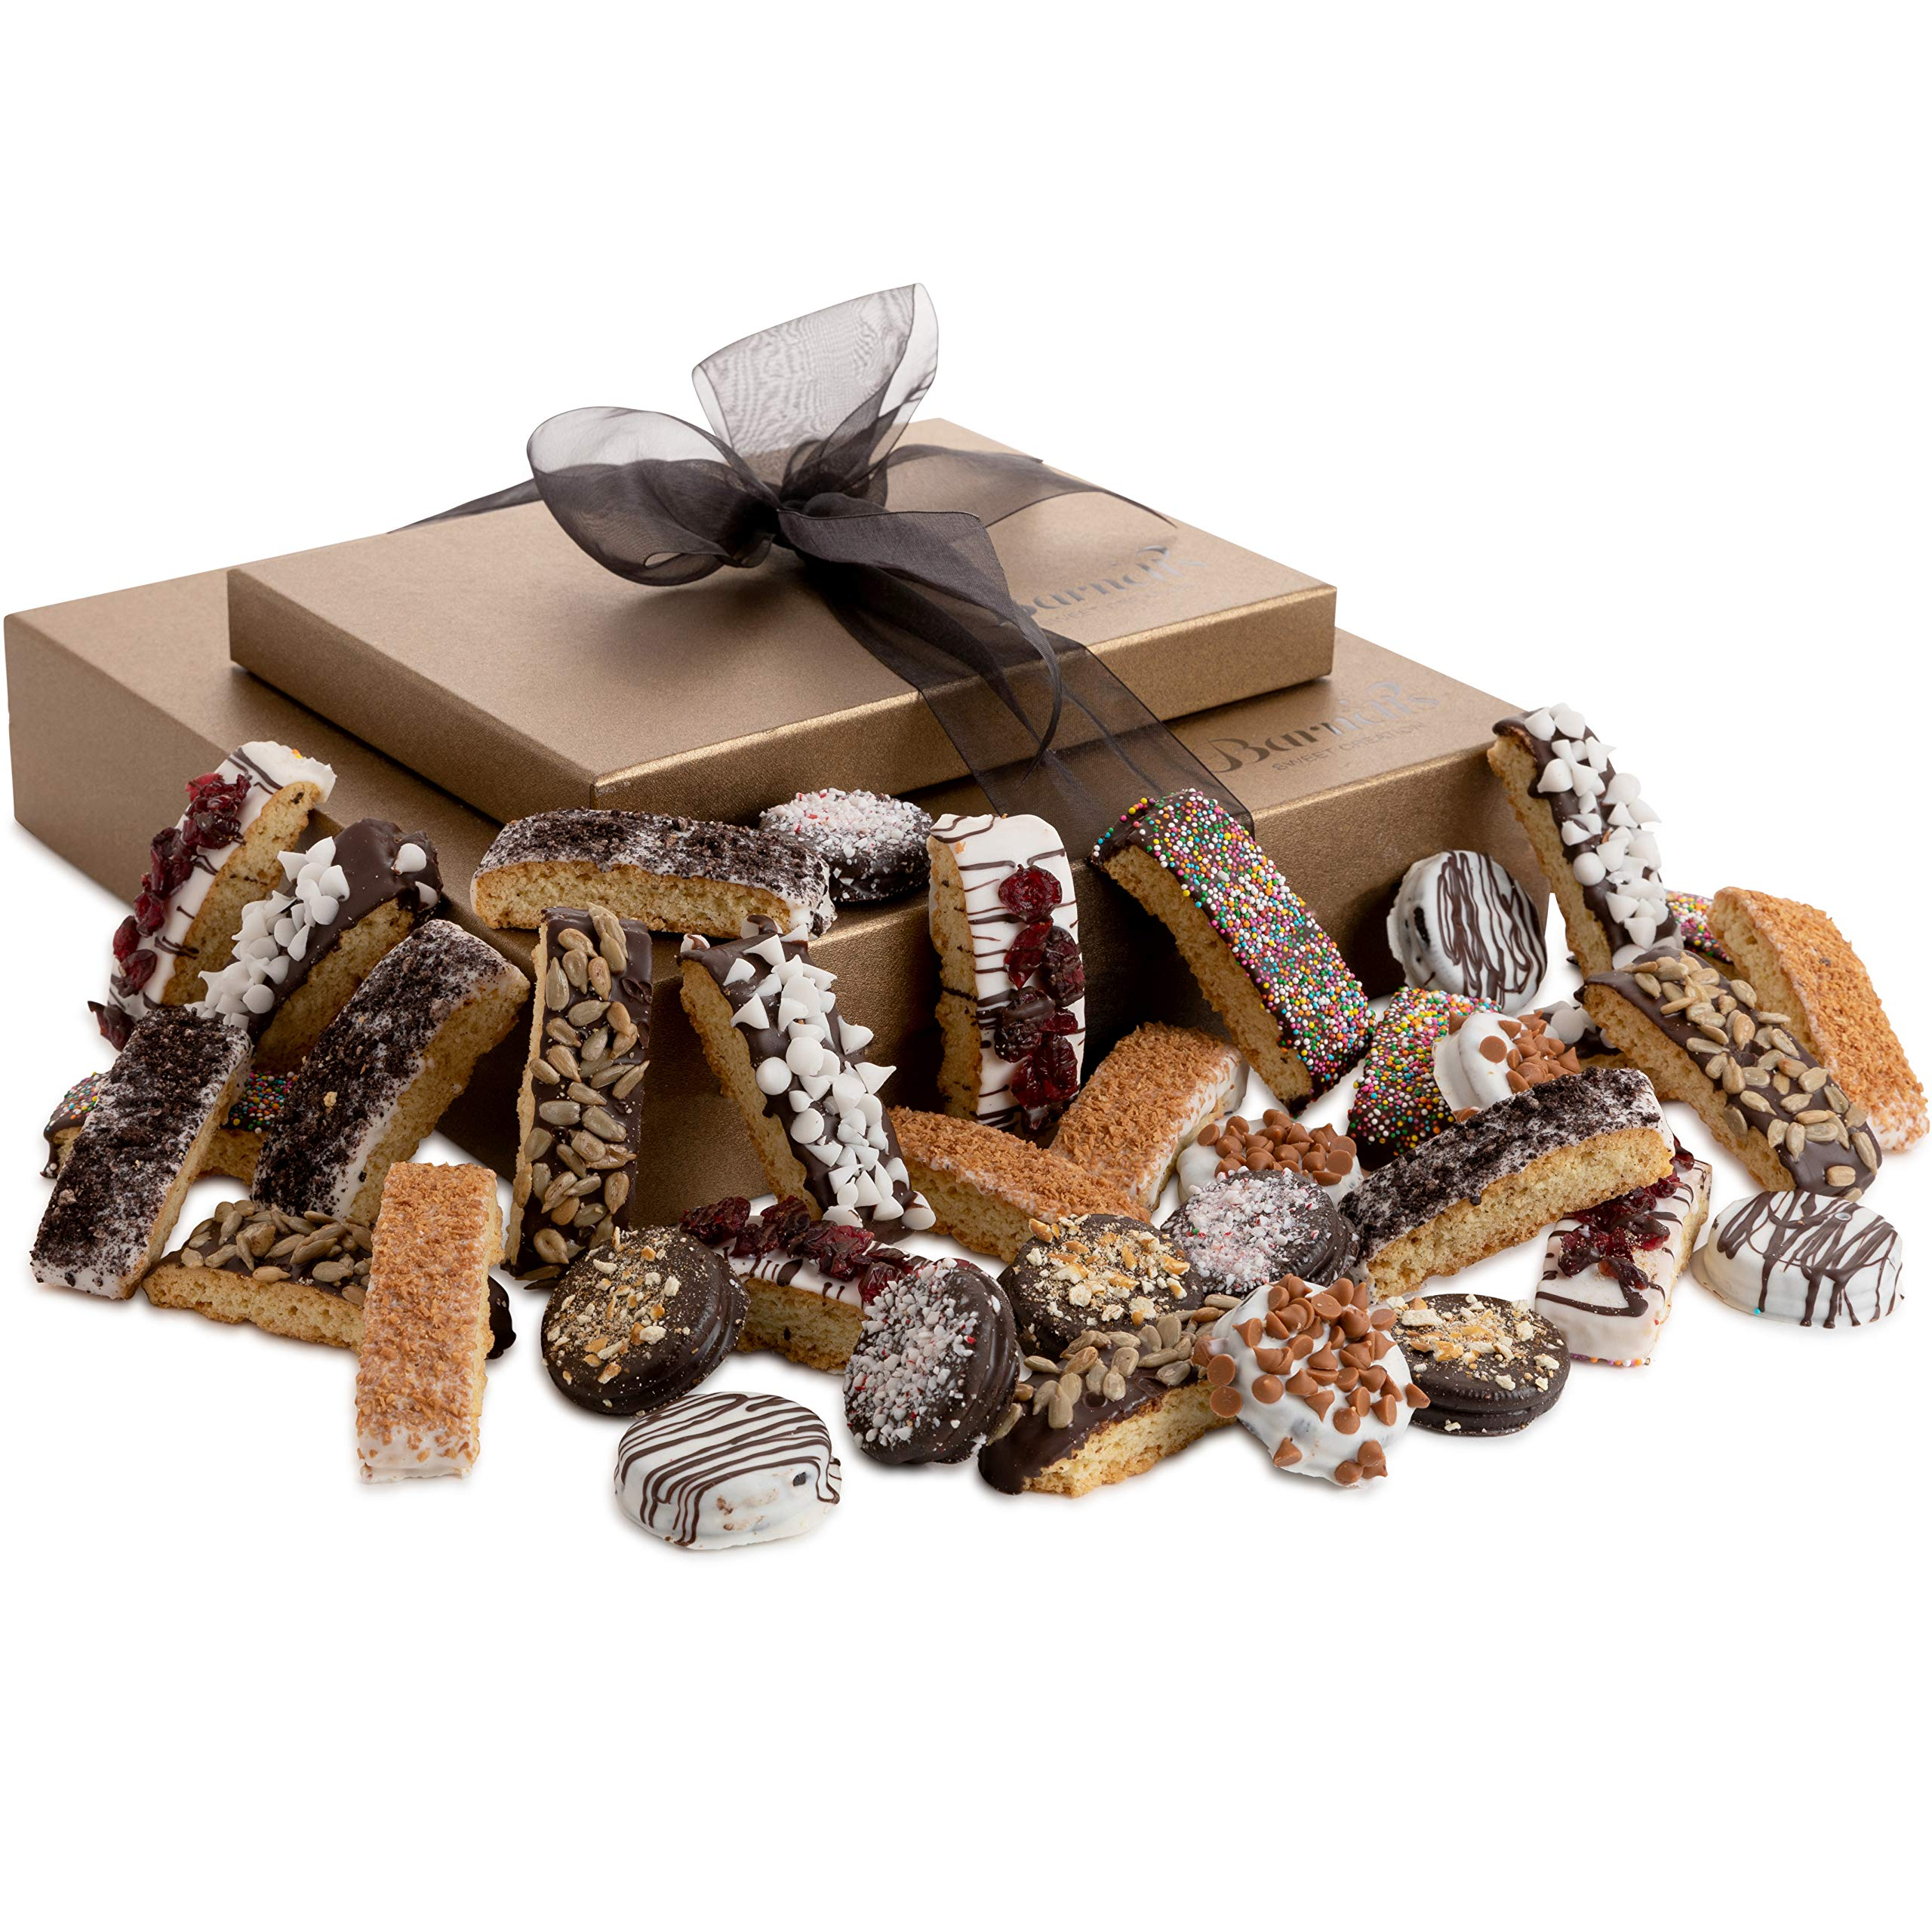 Barnett's Chocolate Cookies & Biscotti Gift Basket Tower, Unique Holiday Gourmet Cookie Gifts, Christmas Food Idea For Him Her Corporate Men Women Families Thanksgiving Valentines Fathers Mothers Day by Barnett's Fine Biscotti (Image #2)